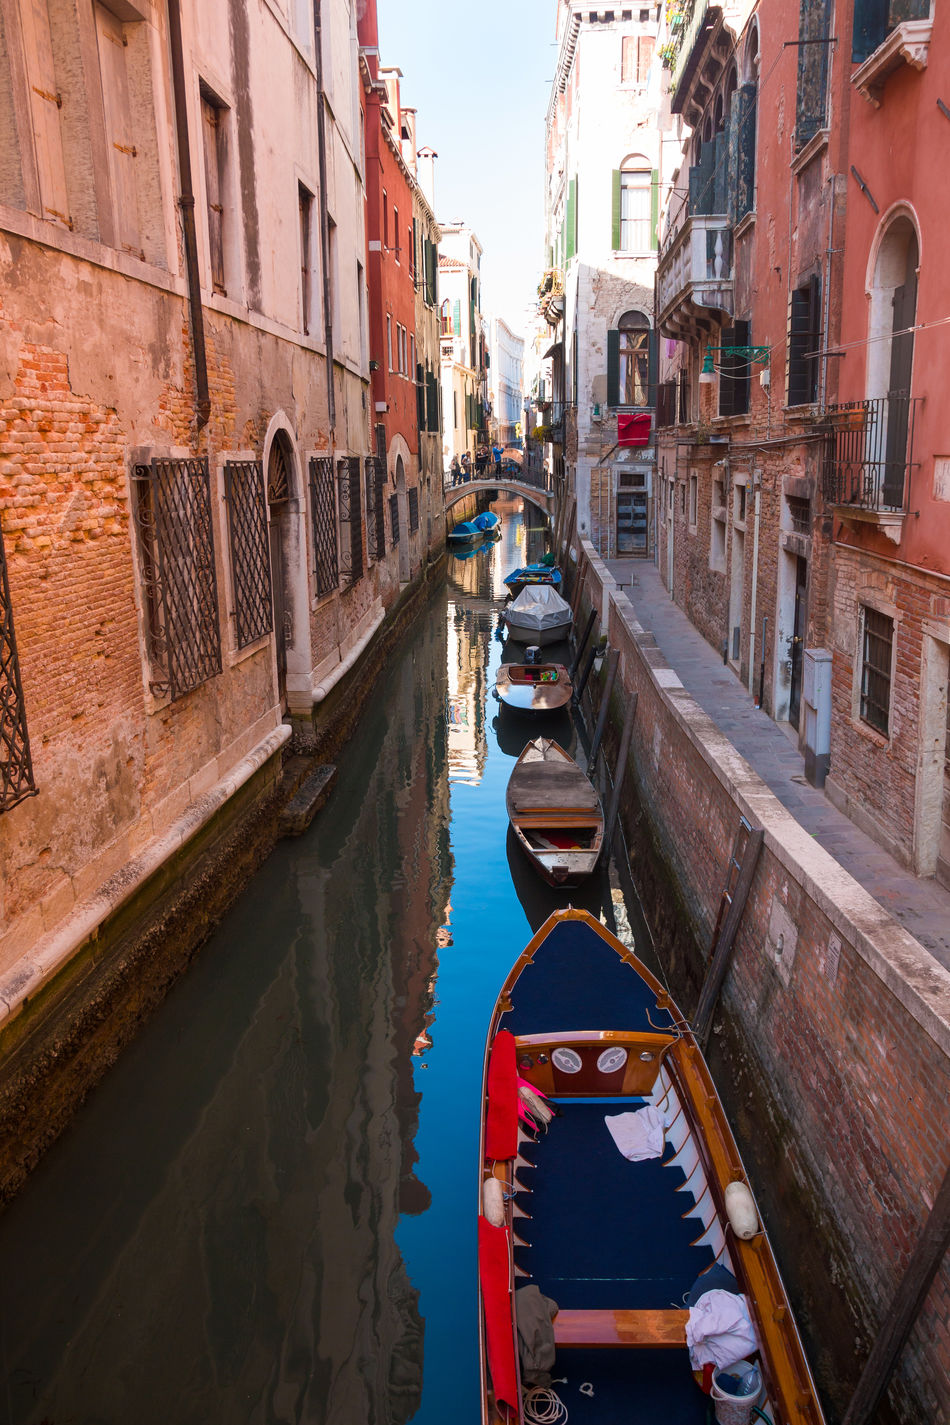 Architecture Building Exterior Built Structure Canal City Day Gondola Gondola - Traditional Boat Italy Mode Of Transport Moored Nautical Vessel No People Outdoors Transportation Venice, Italy Water